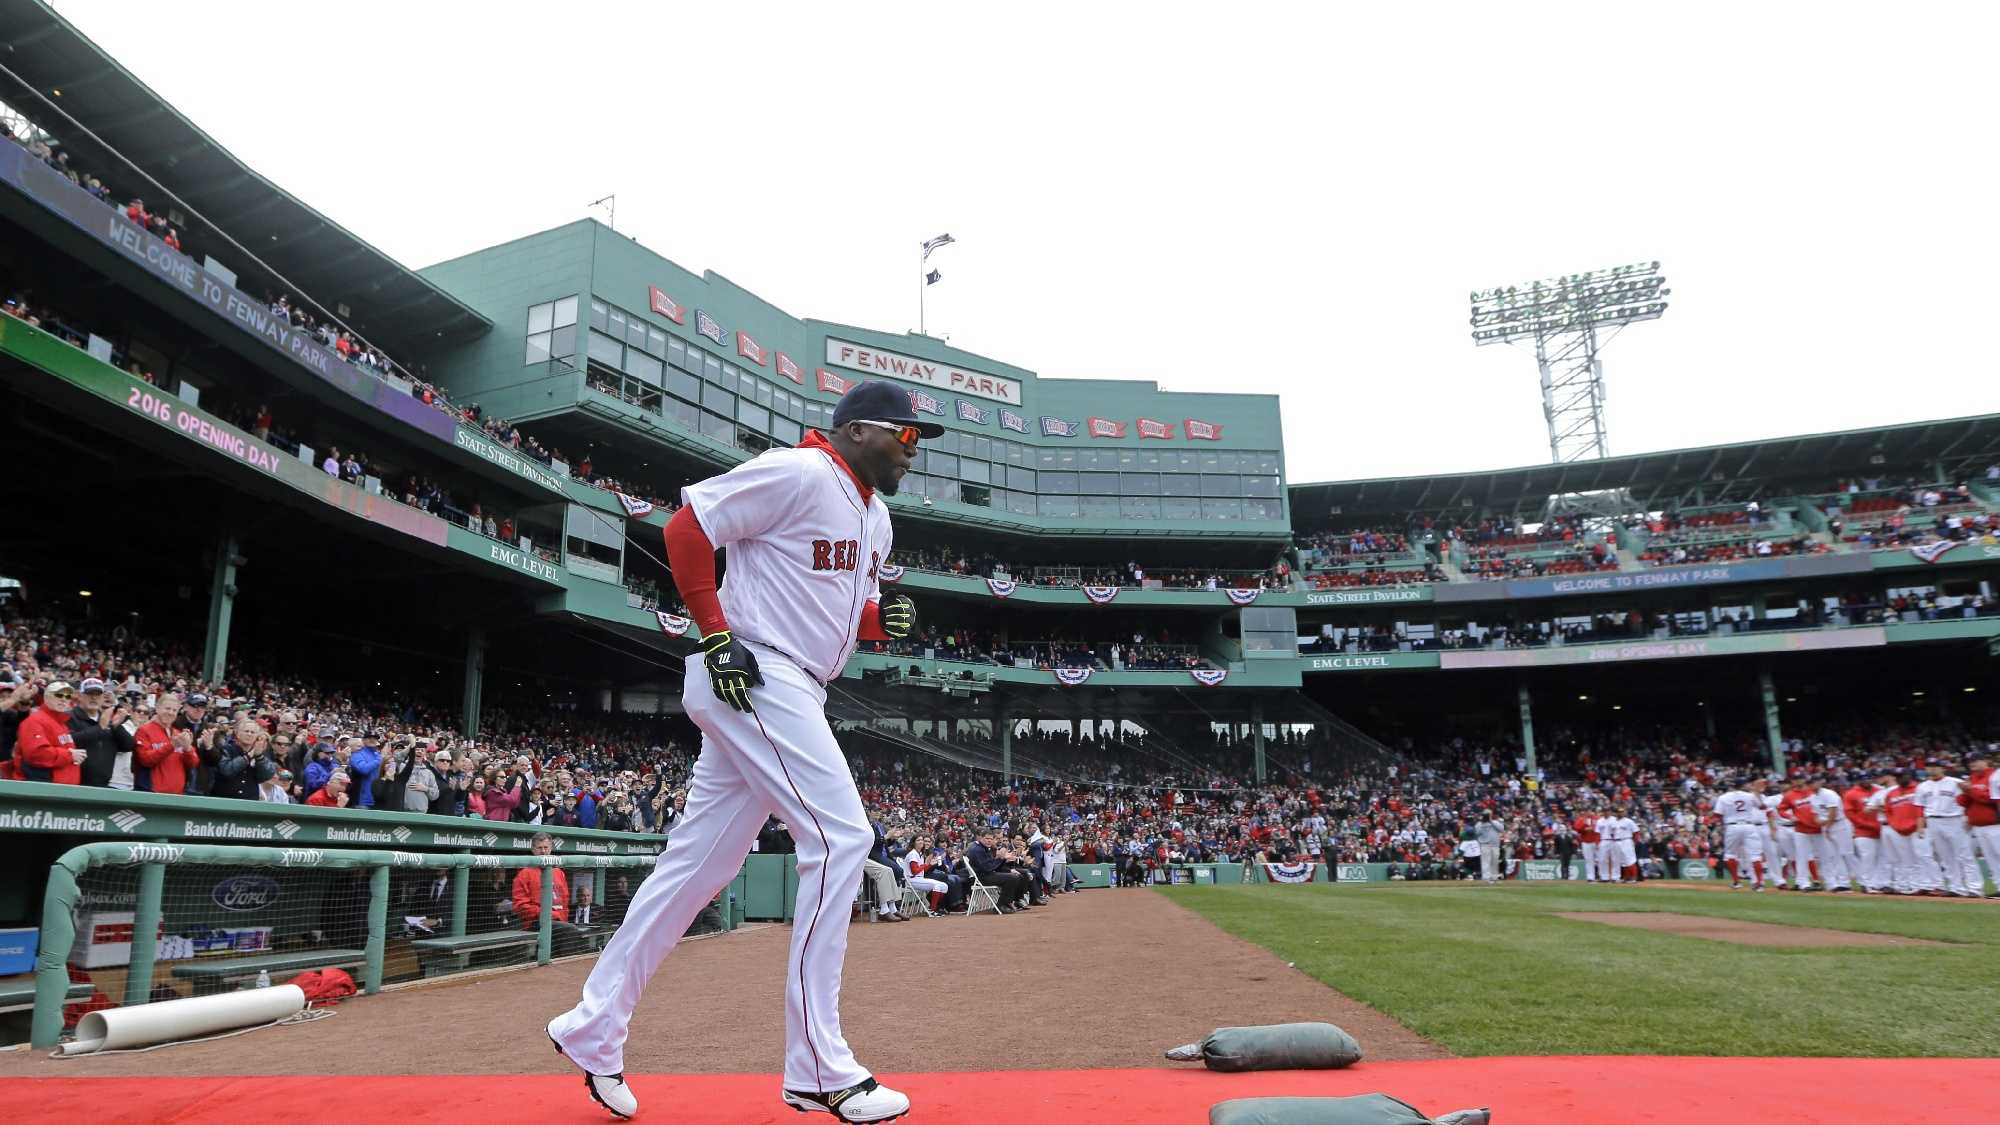 Boston Red Sox designated hitter David Ortiz runs onto the field as he is introduced for the home opener baseball game against the Baltimore Orioles at Fenway Park, Monday, April 11, 2016, in Boston.